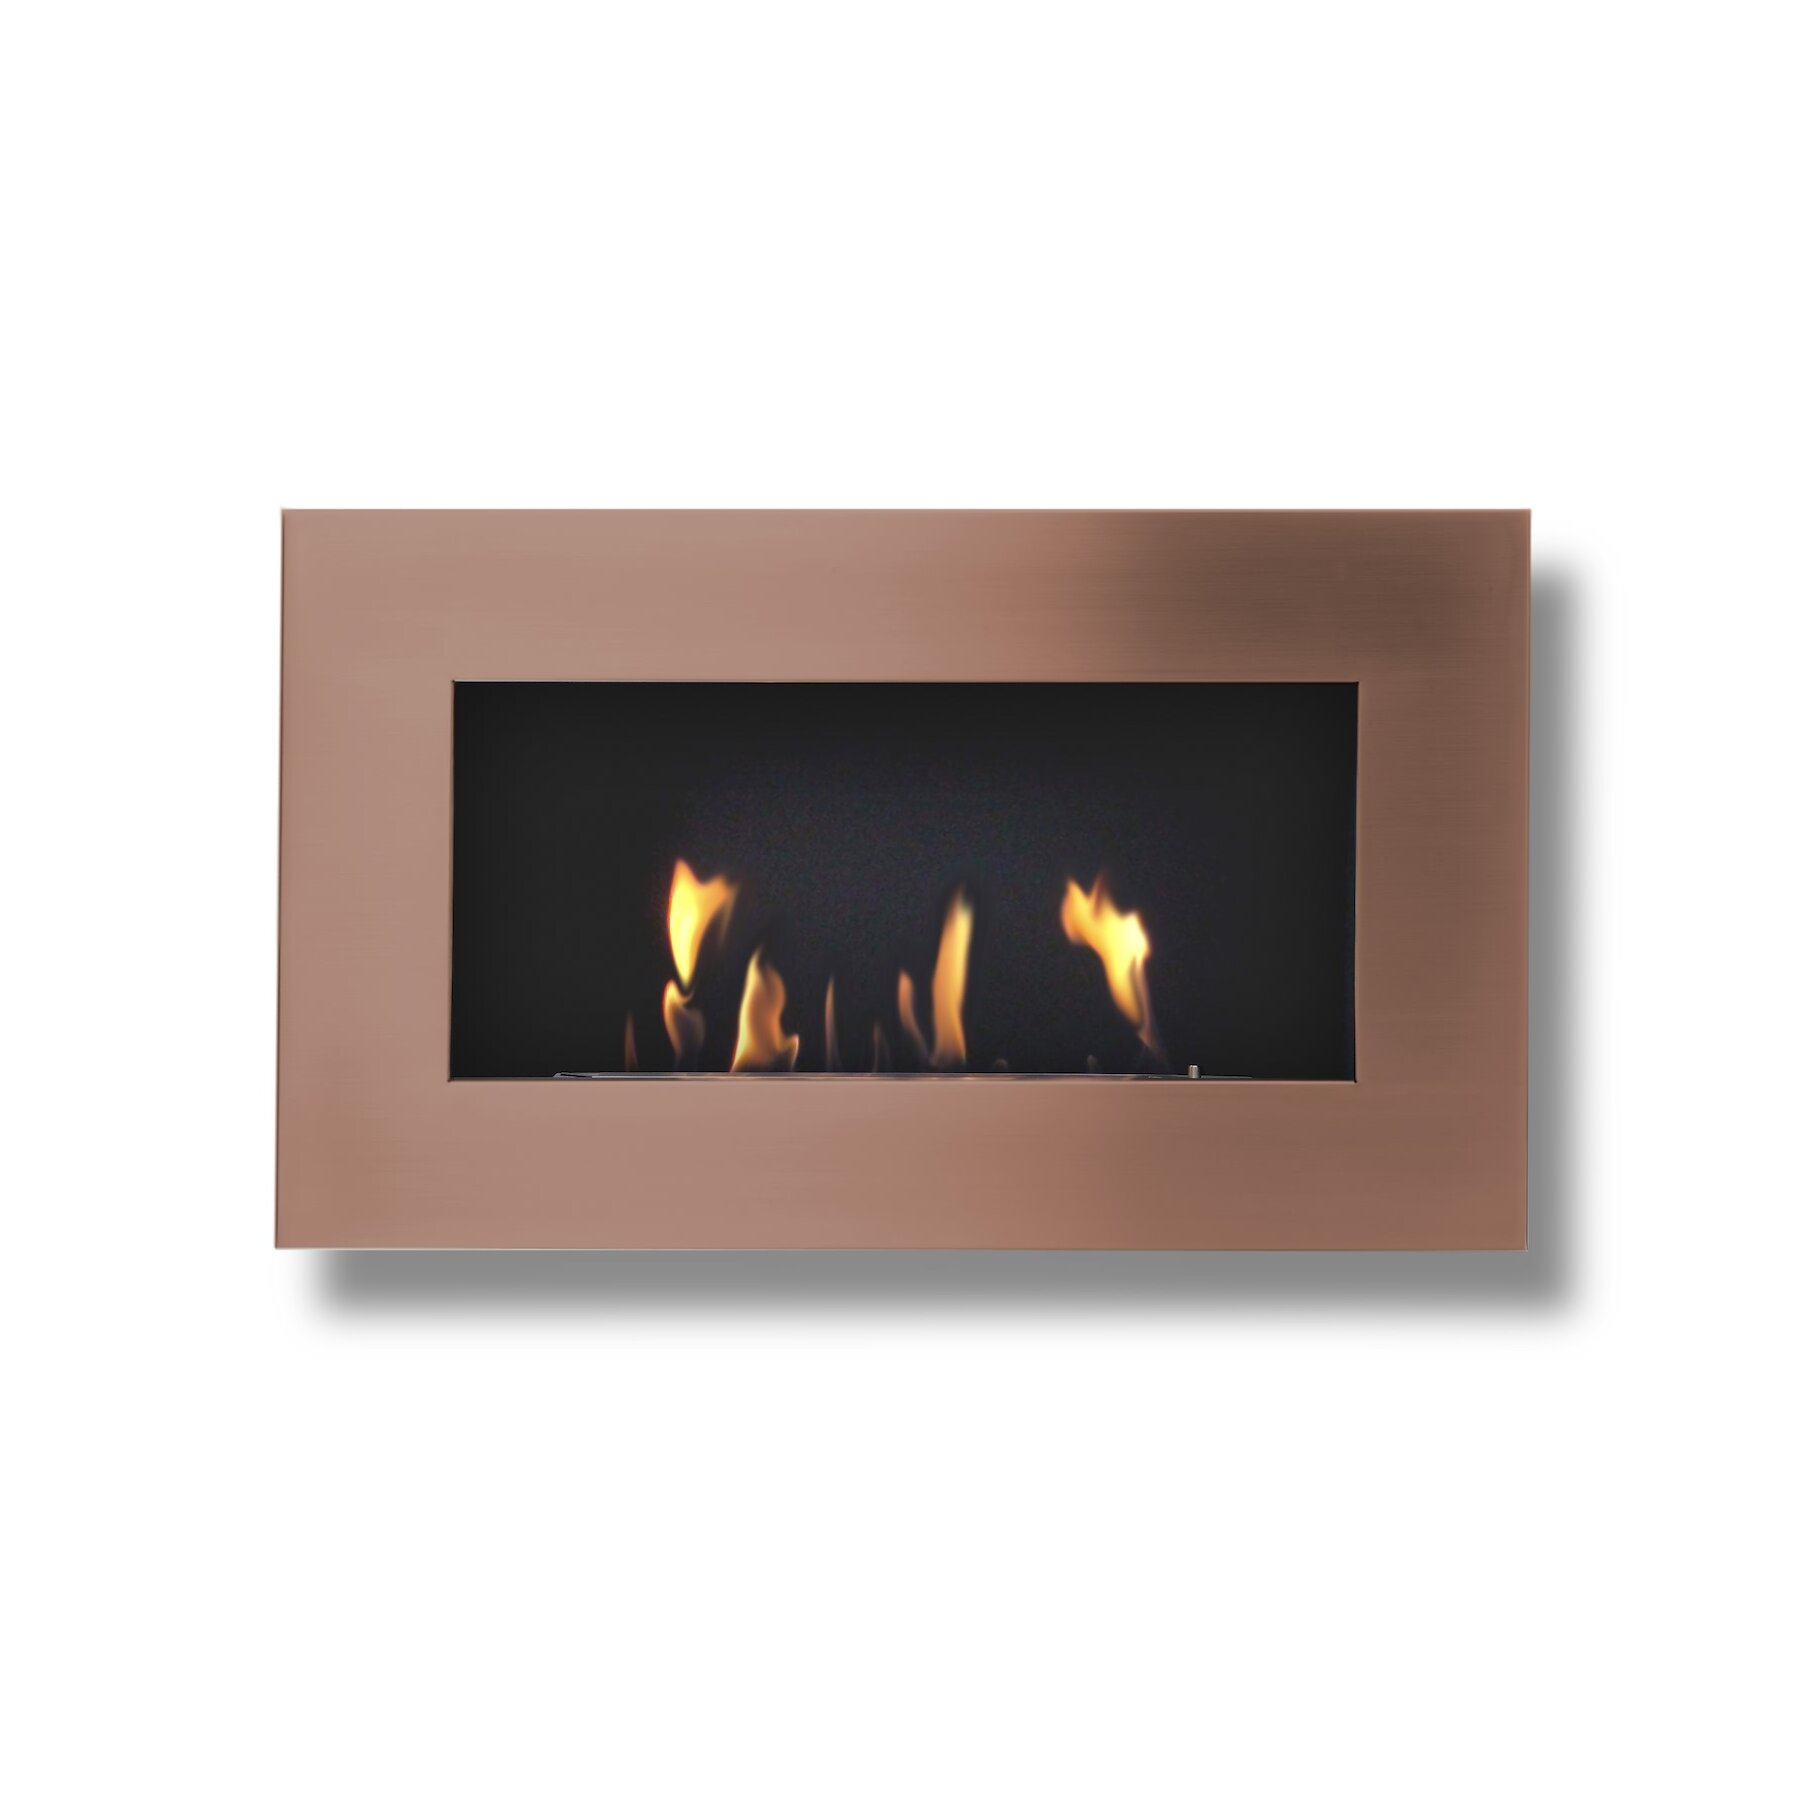 New York Plaza Decoflame Bio Ethanol Wandkamin Decoflame New York